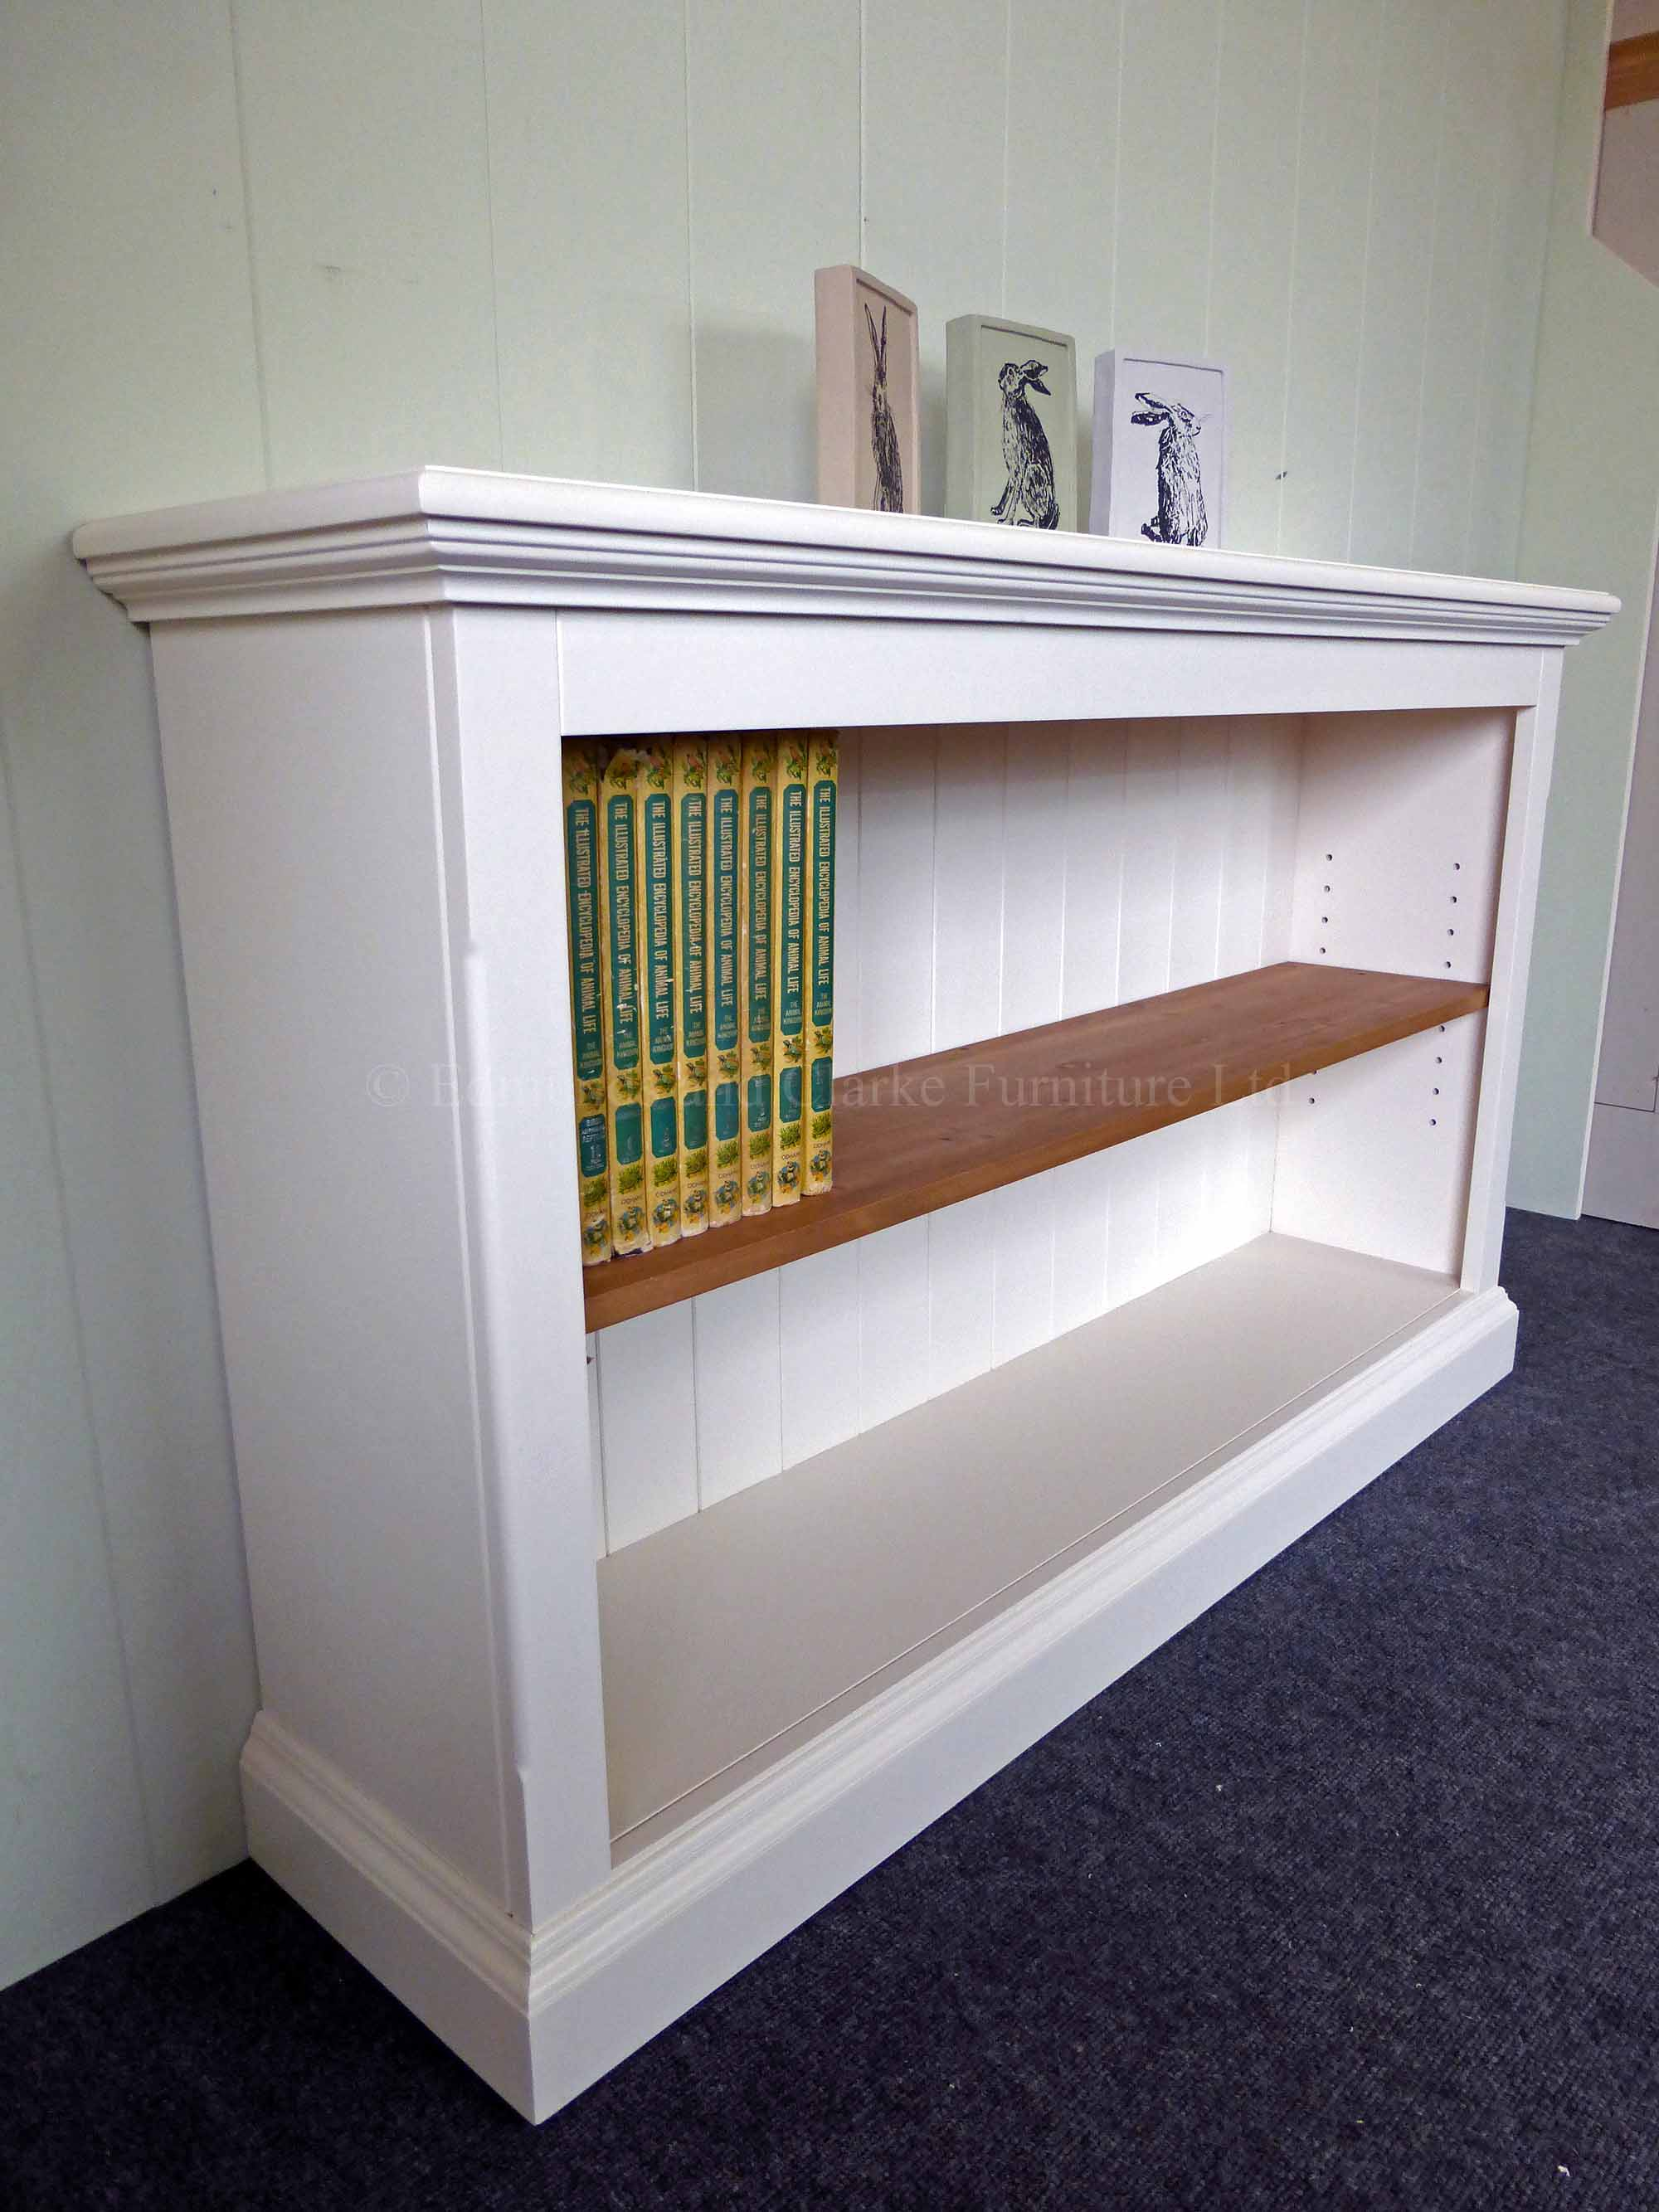 Edmunds Painted shallow depth Bookcases. pine or painted shelves available, moulded top and plinth. many heights and widths available only at edmunds clarke bury st edmunds